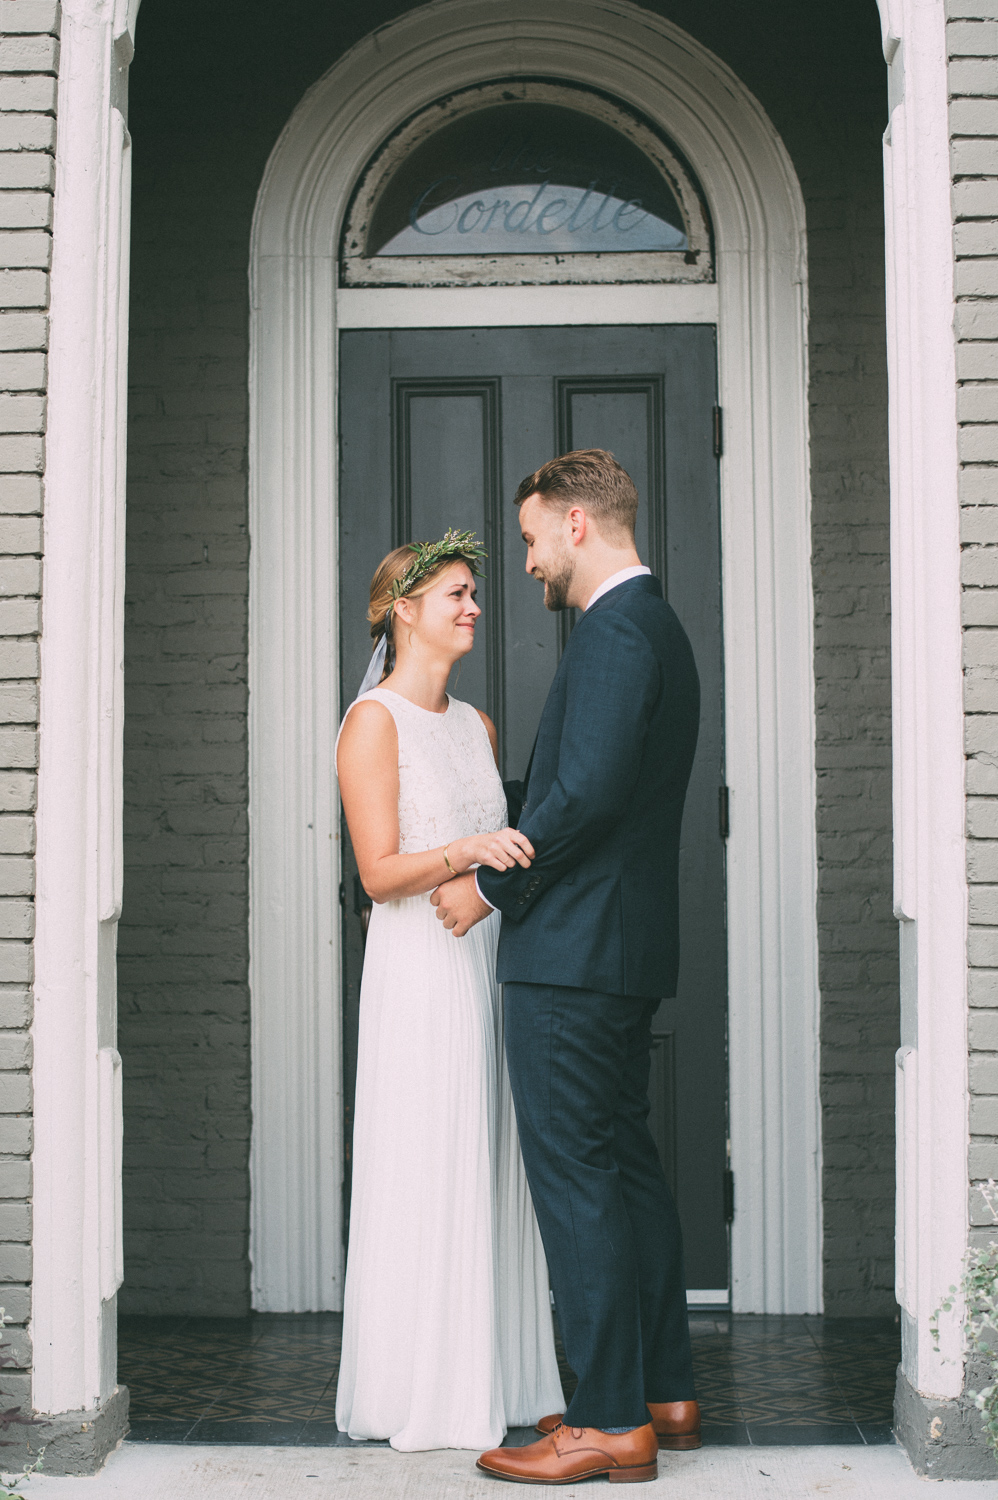 CordelleWedding_NashvilleWeddingPhotographer_by_TheImageIsFound_0039.jpg